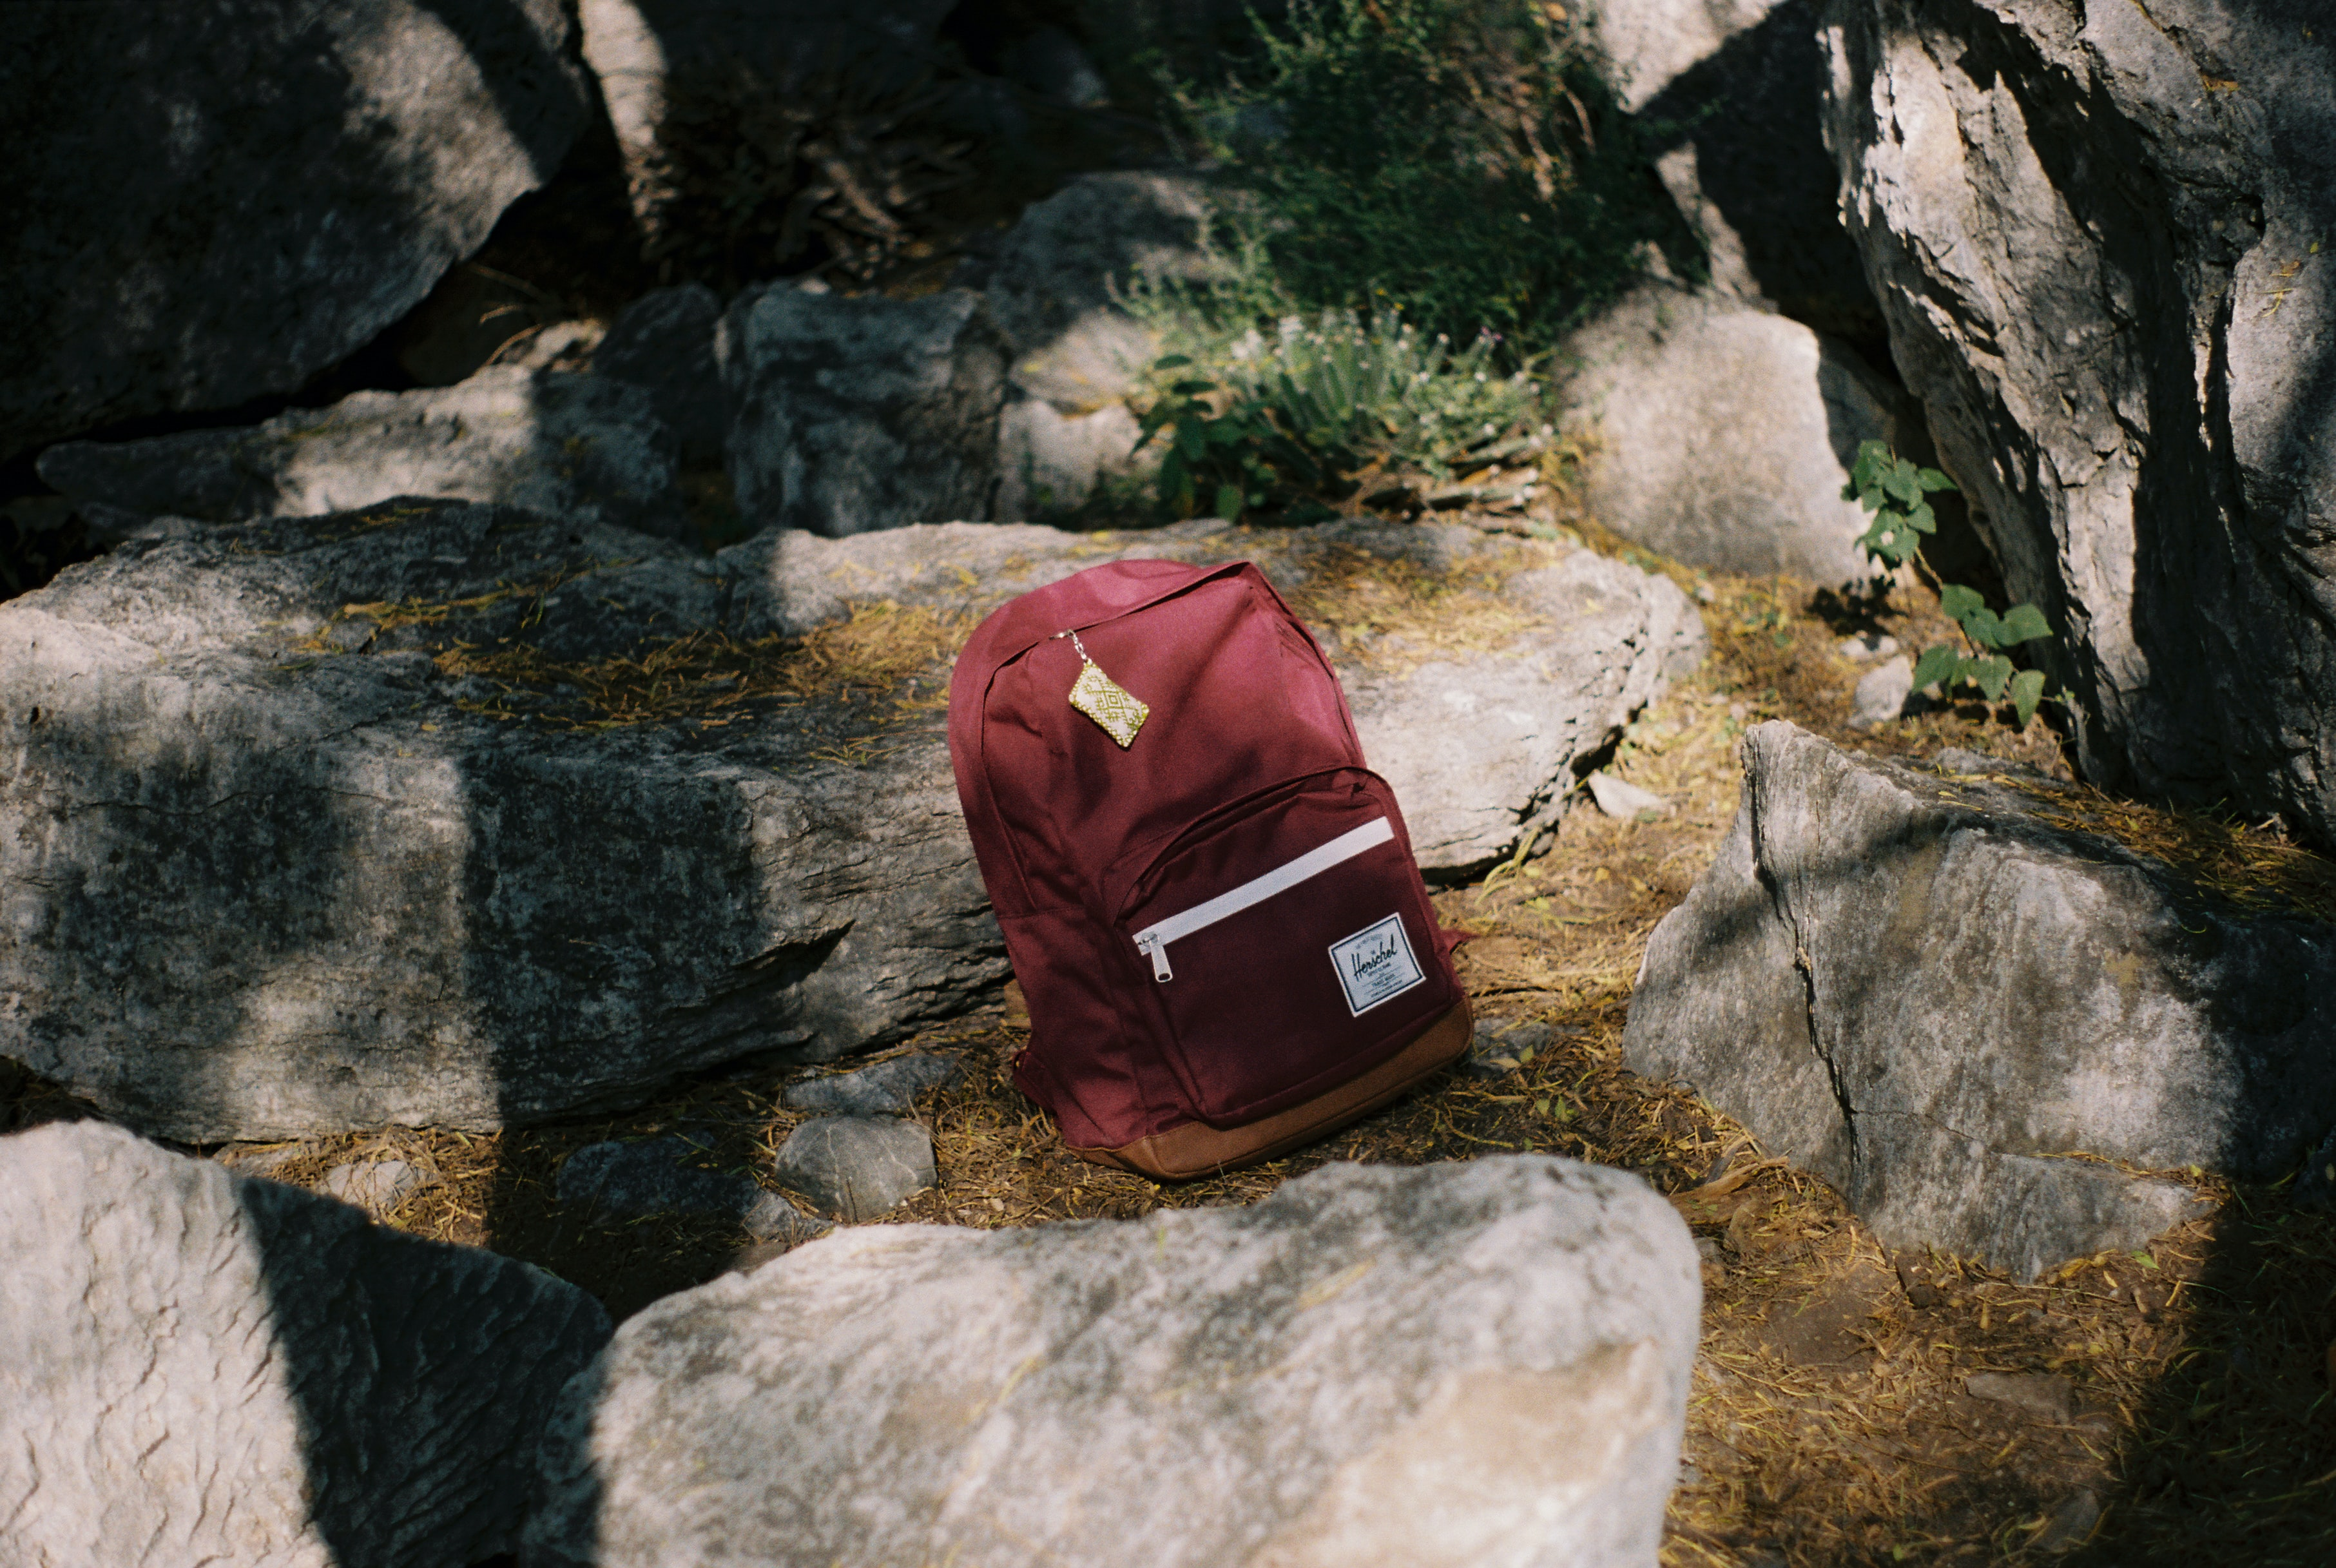 A burgundy Herschel backpack with a coin wallet attached to the zip in the middle of a rocky outdoor area